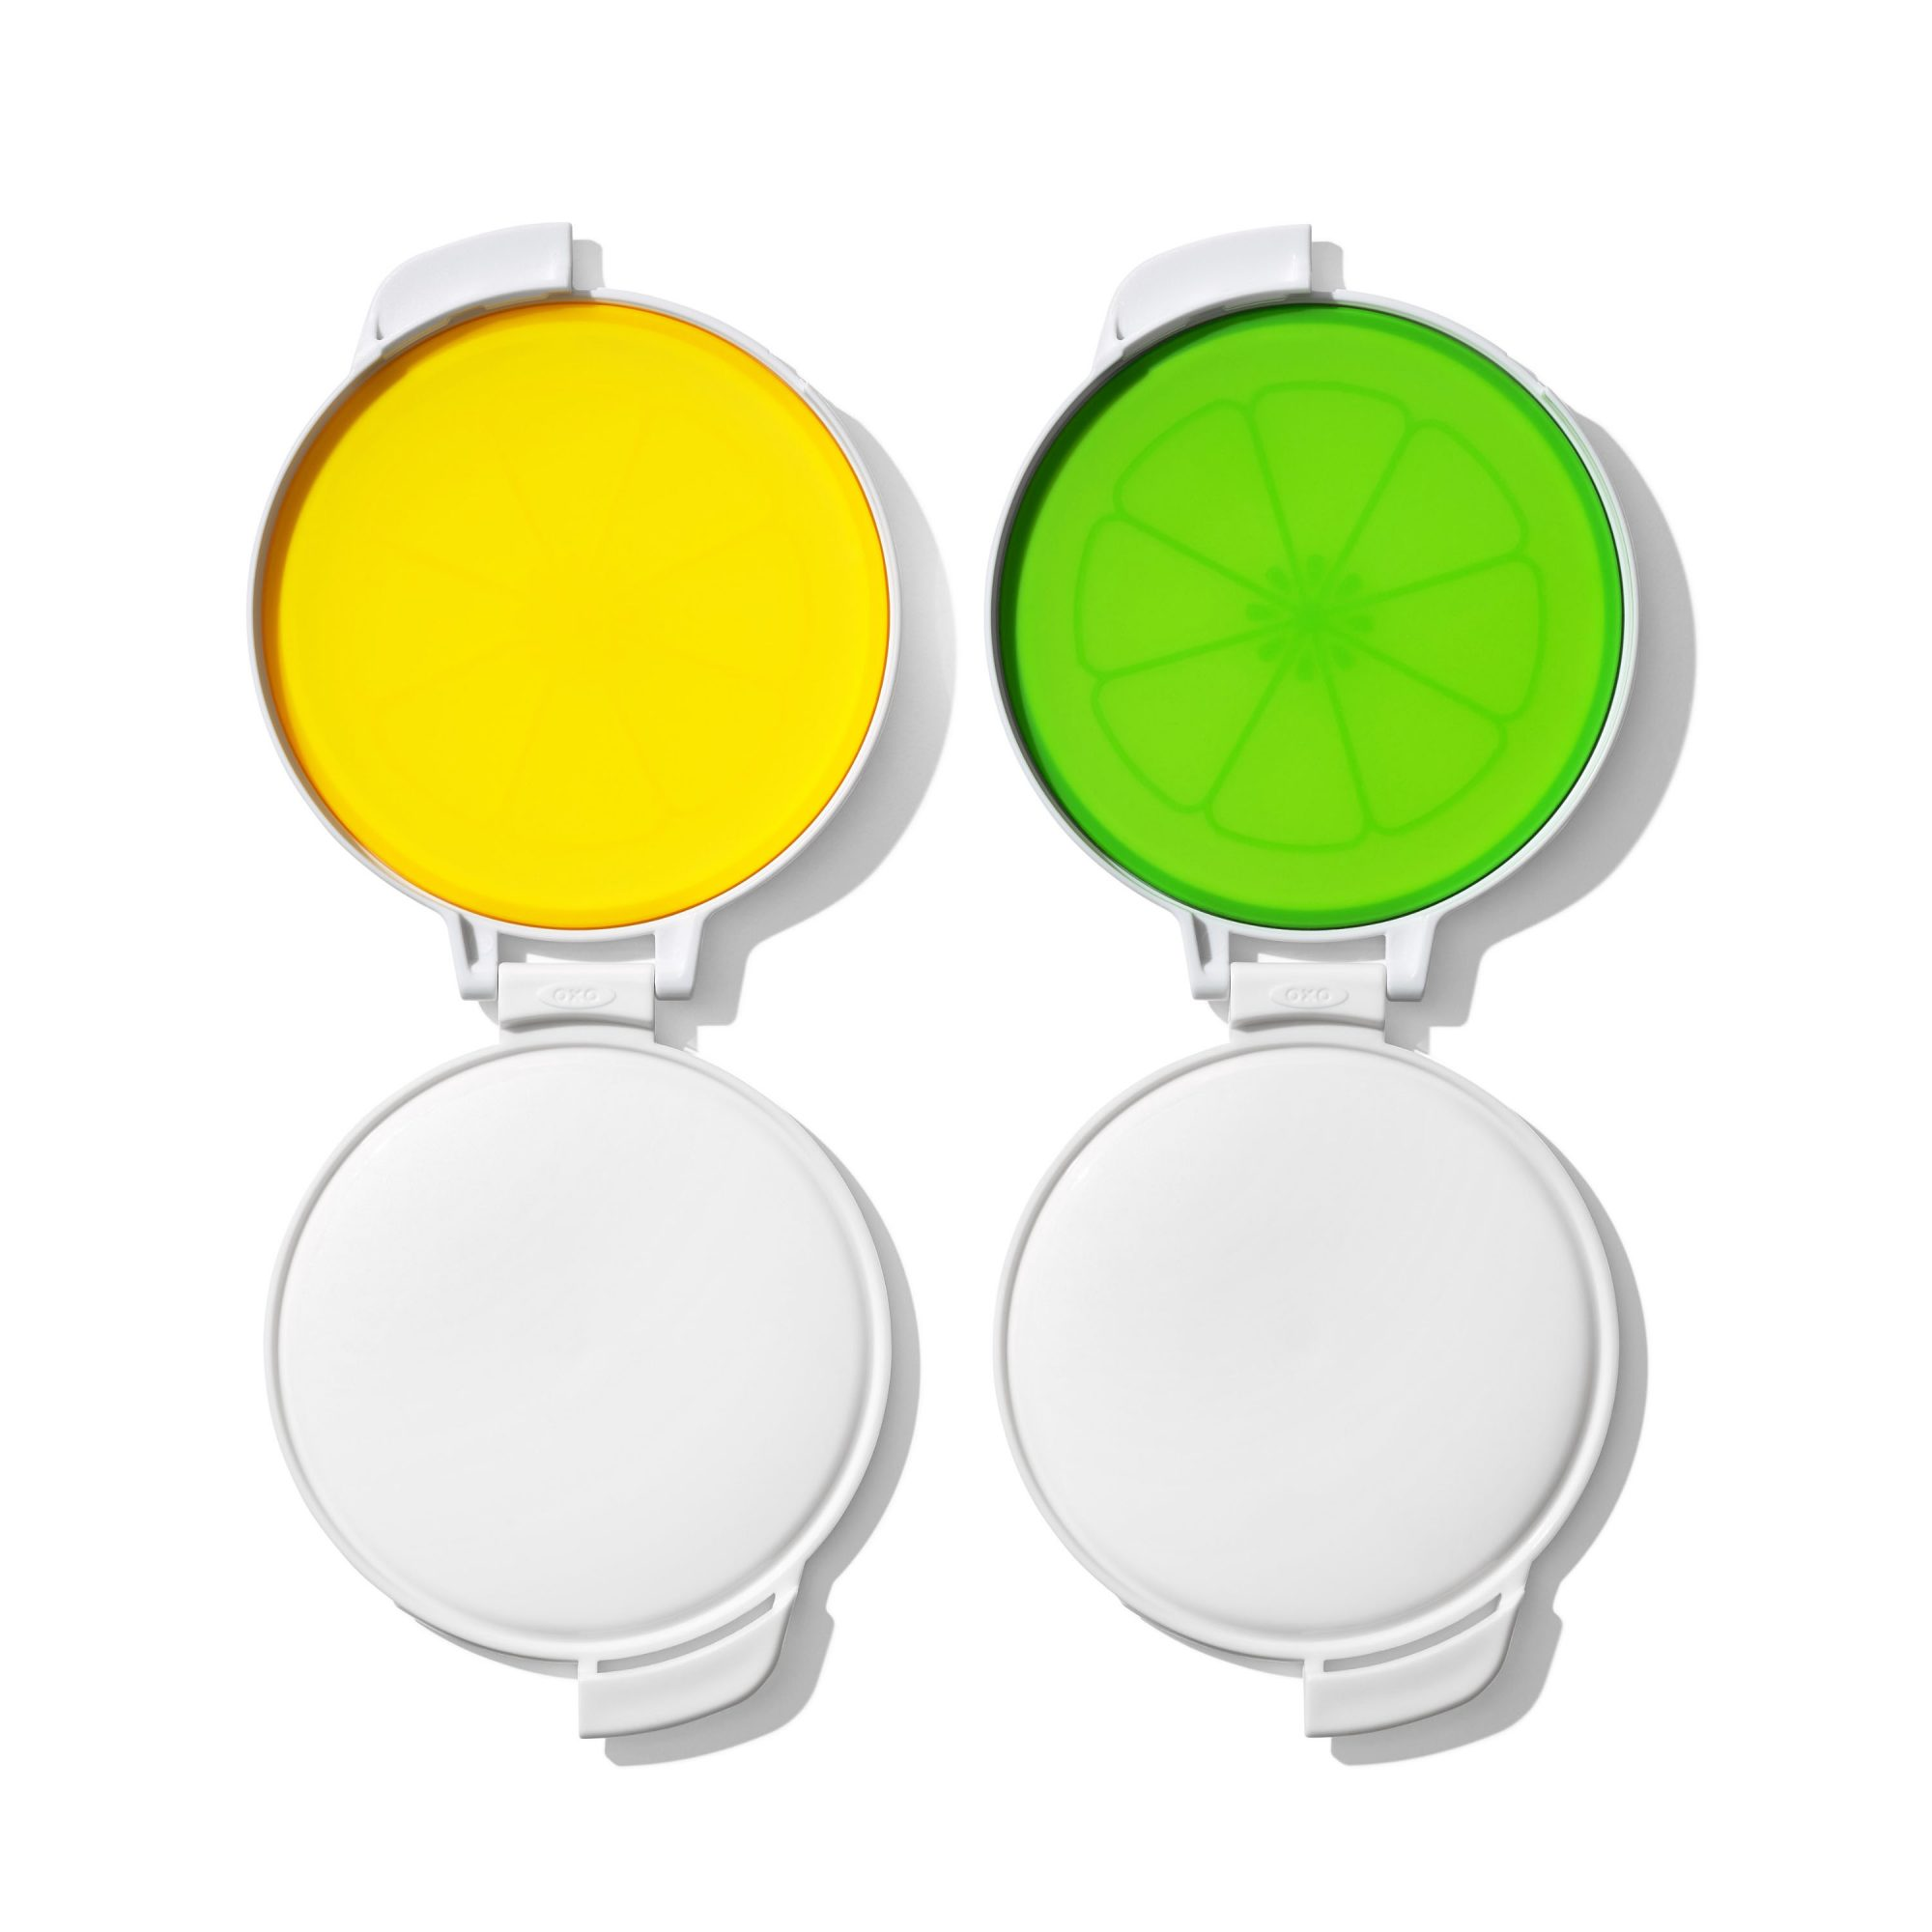 two citrus savers in green and yellow